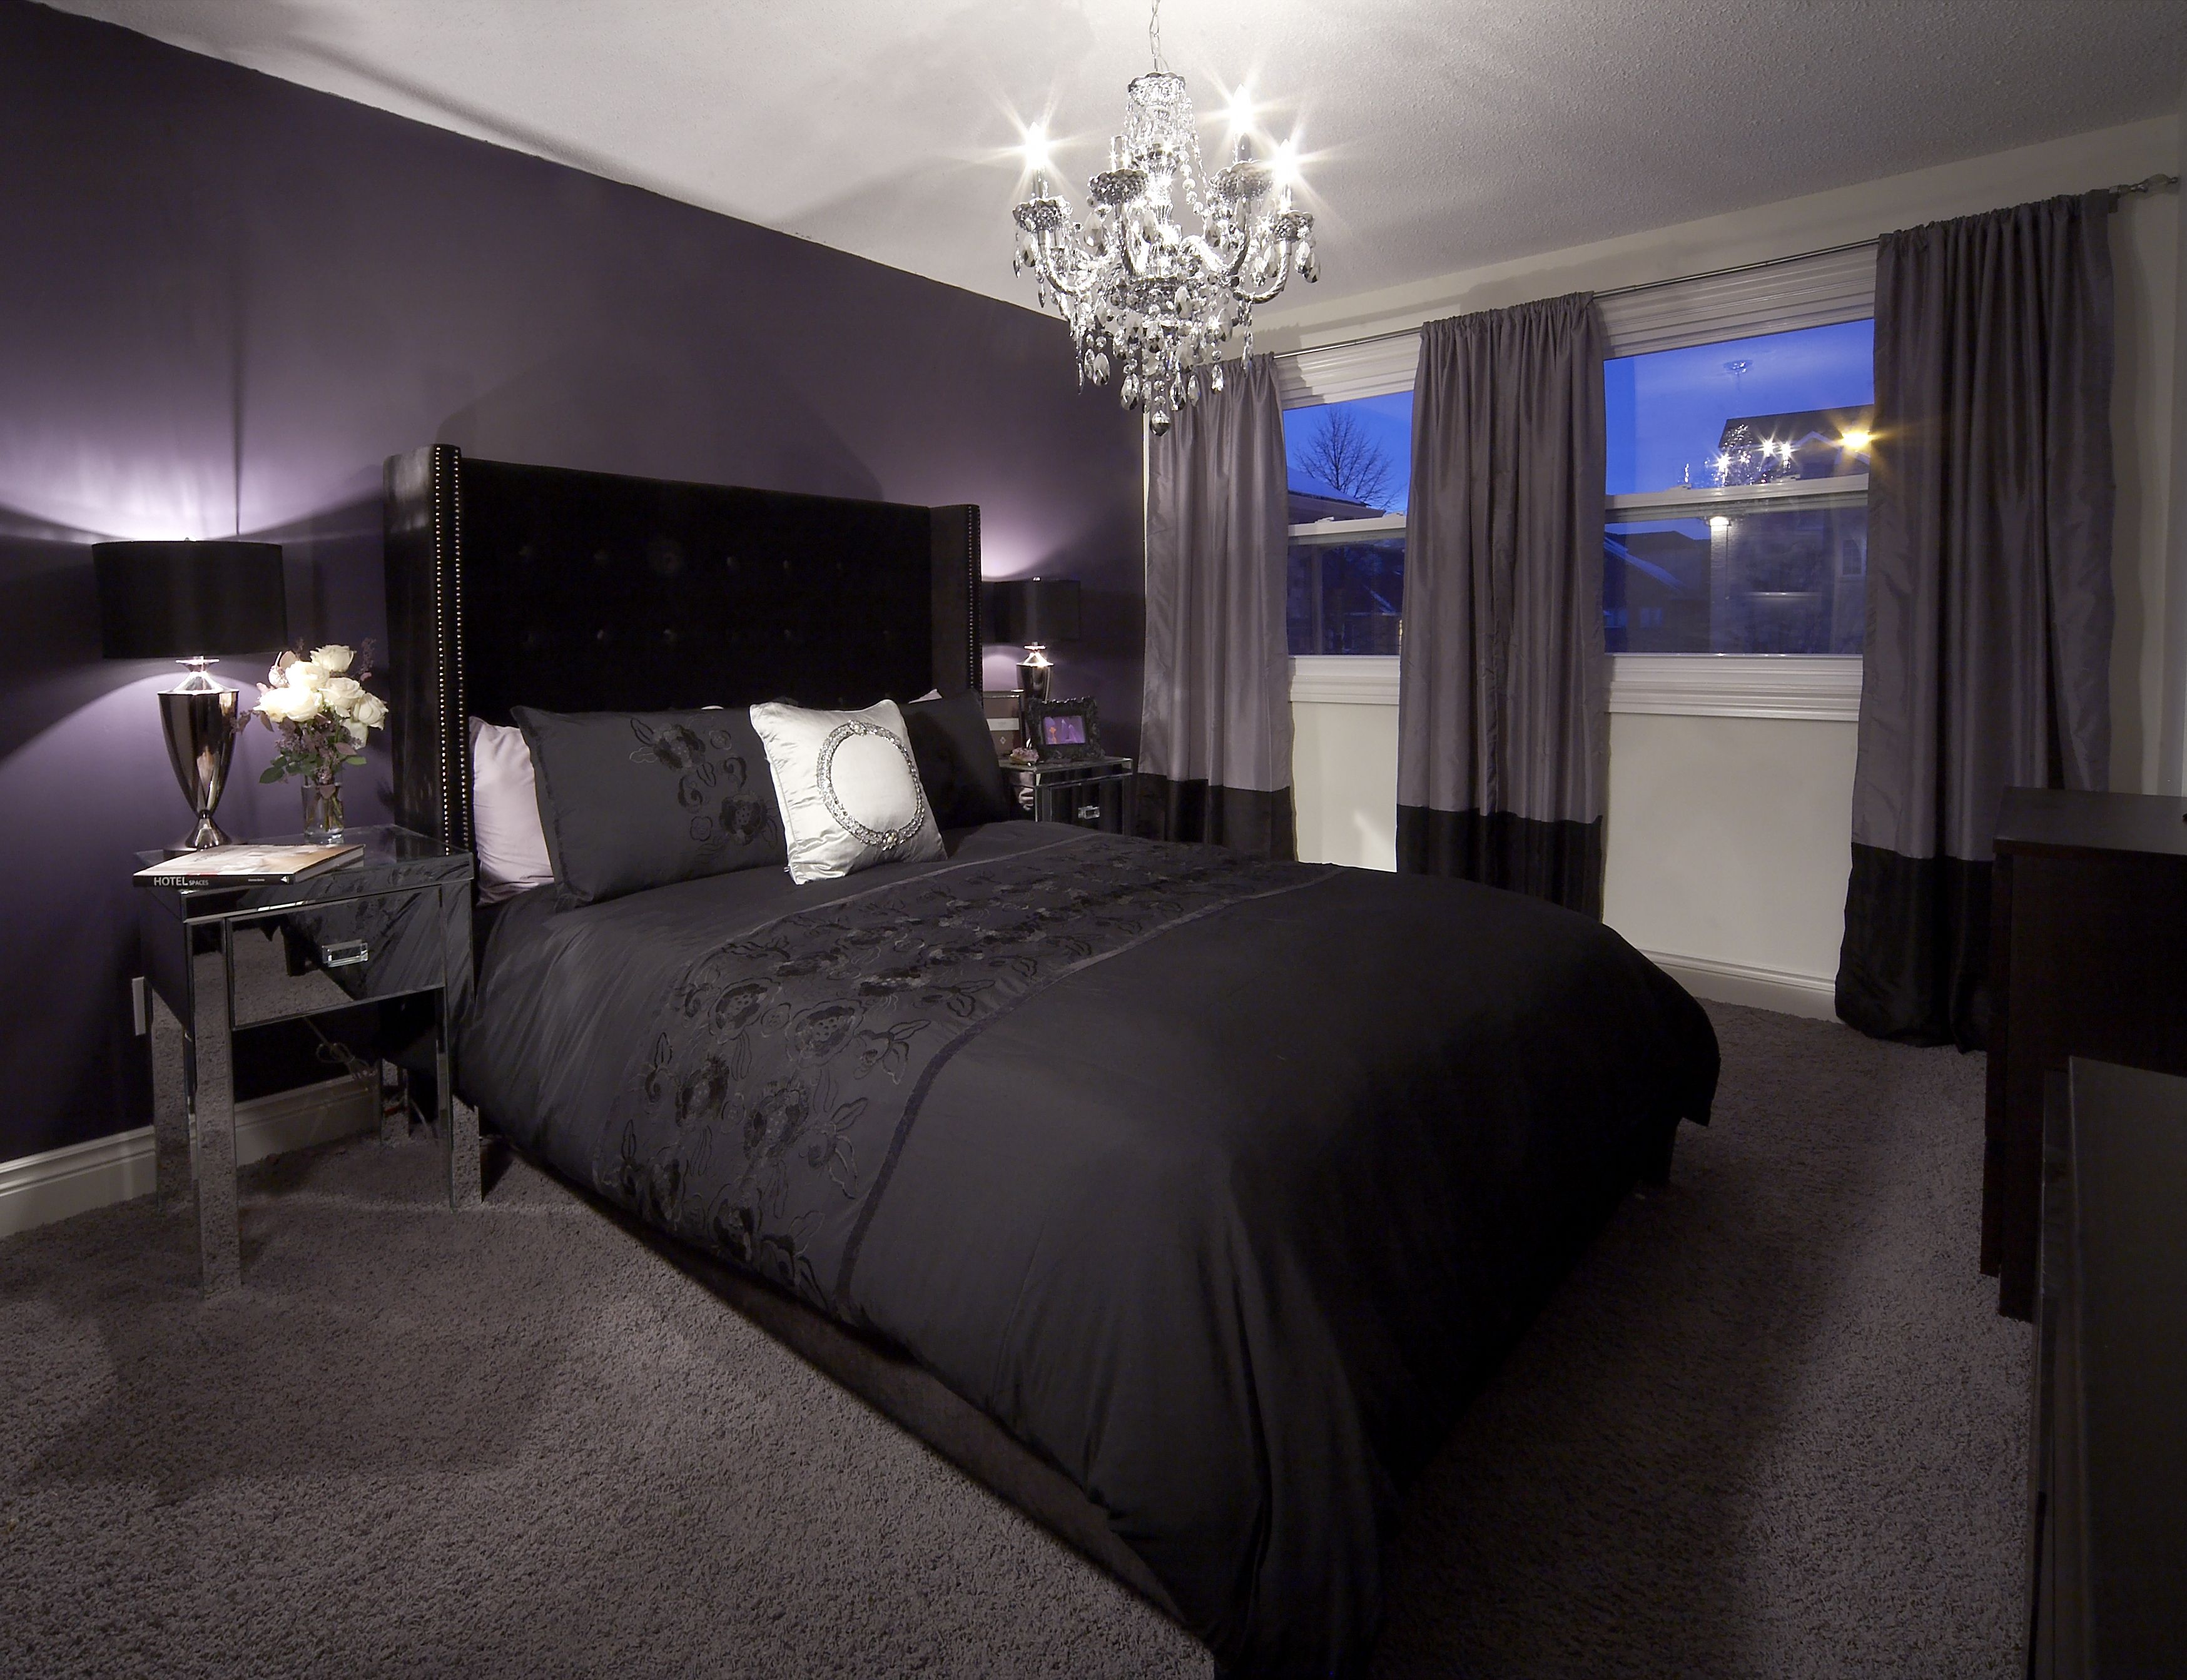 Bedroom with purple feature wall and drapery crystal Purple and black bedroom